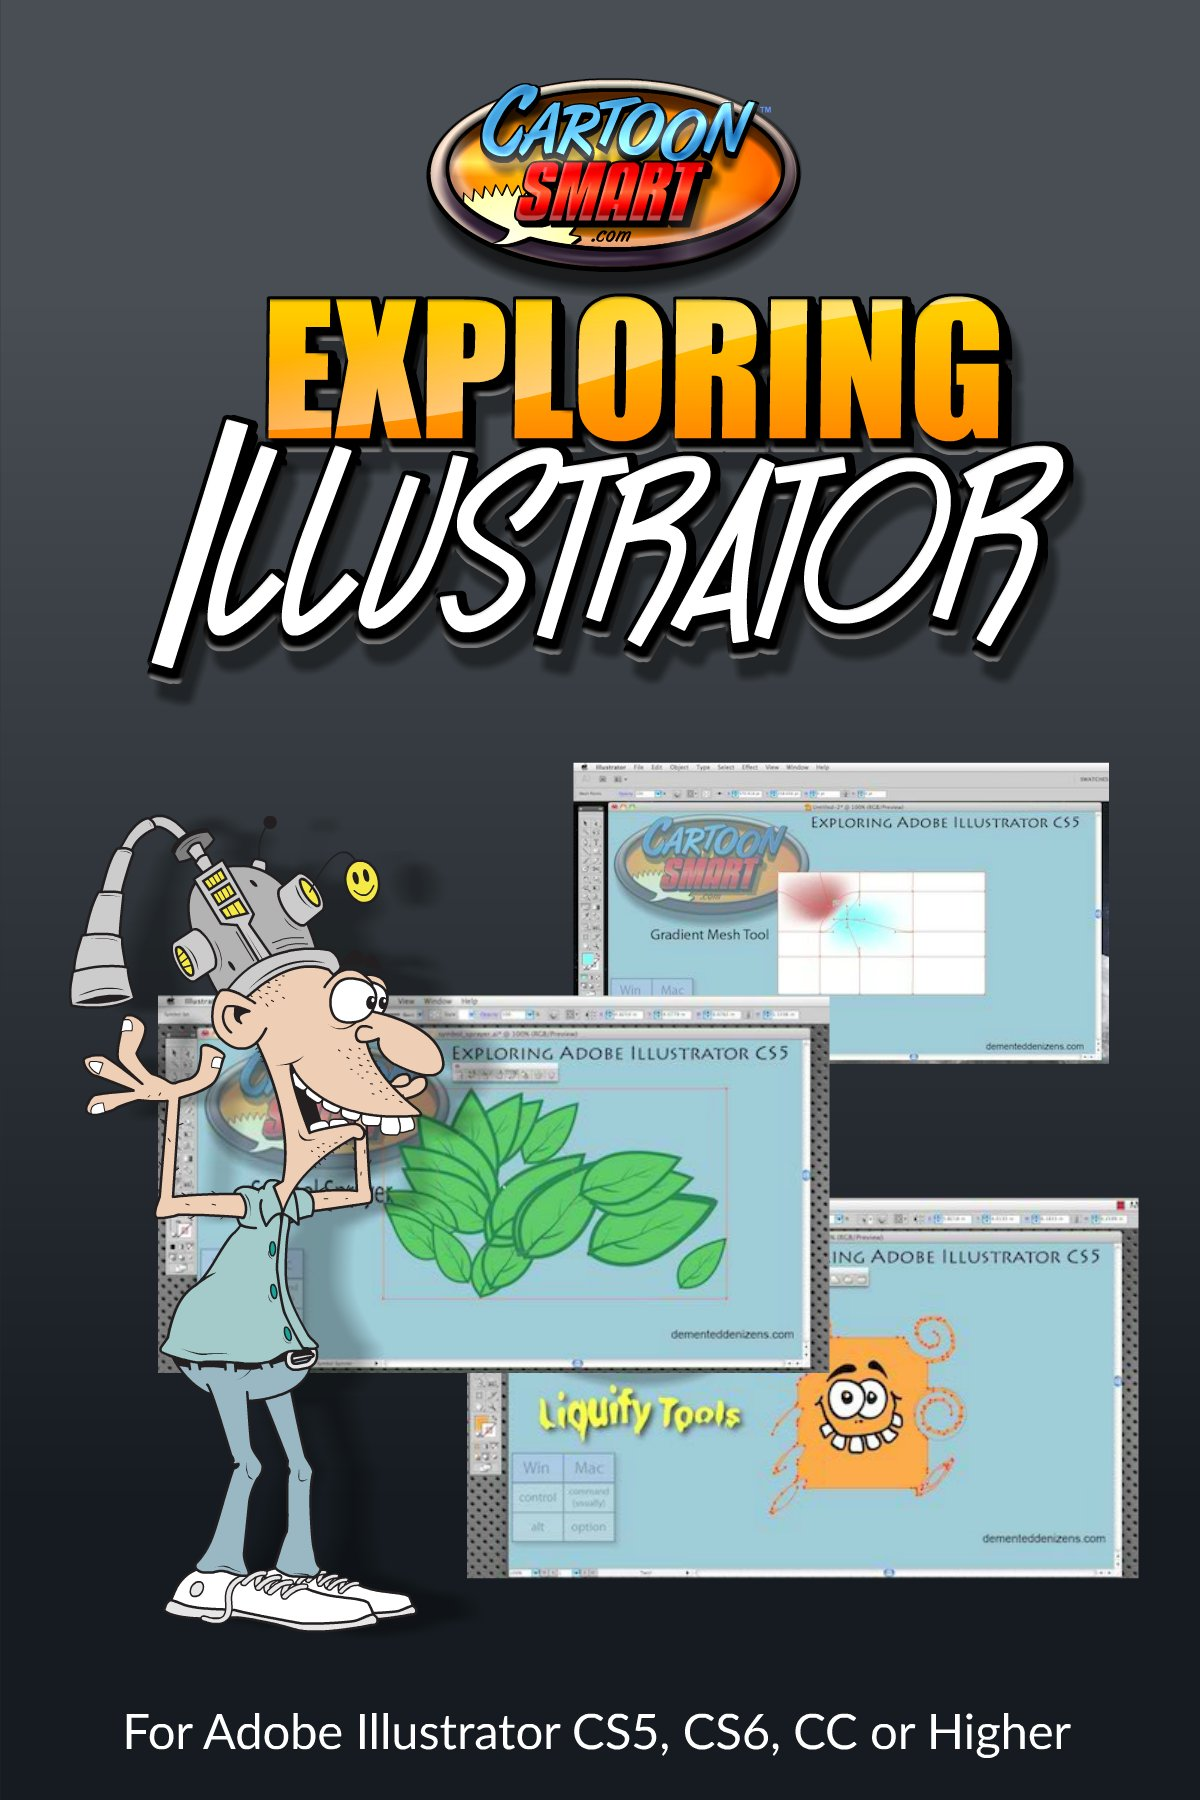 Exploring Adobe Illustrator Tutorials